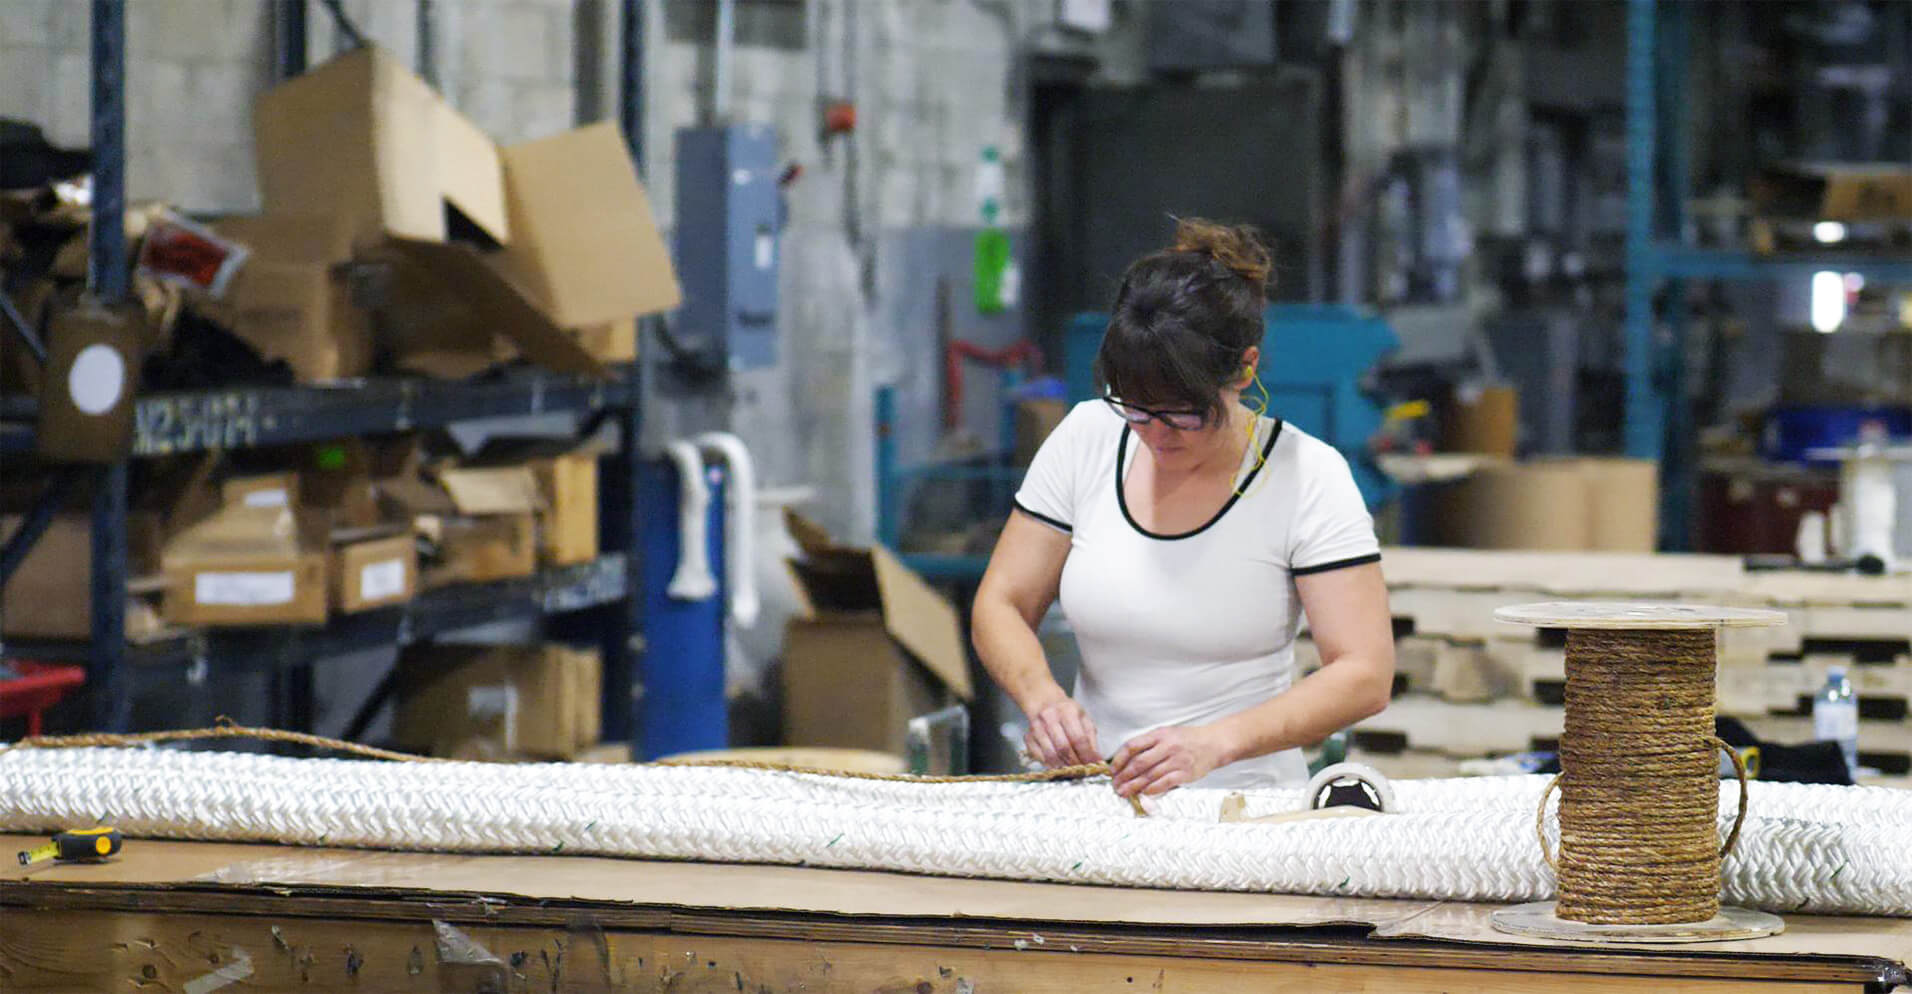 Rope being measure in the Orion Cordage warehouse